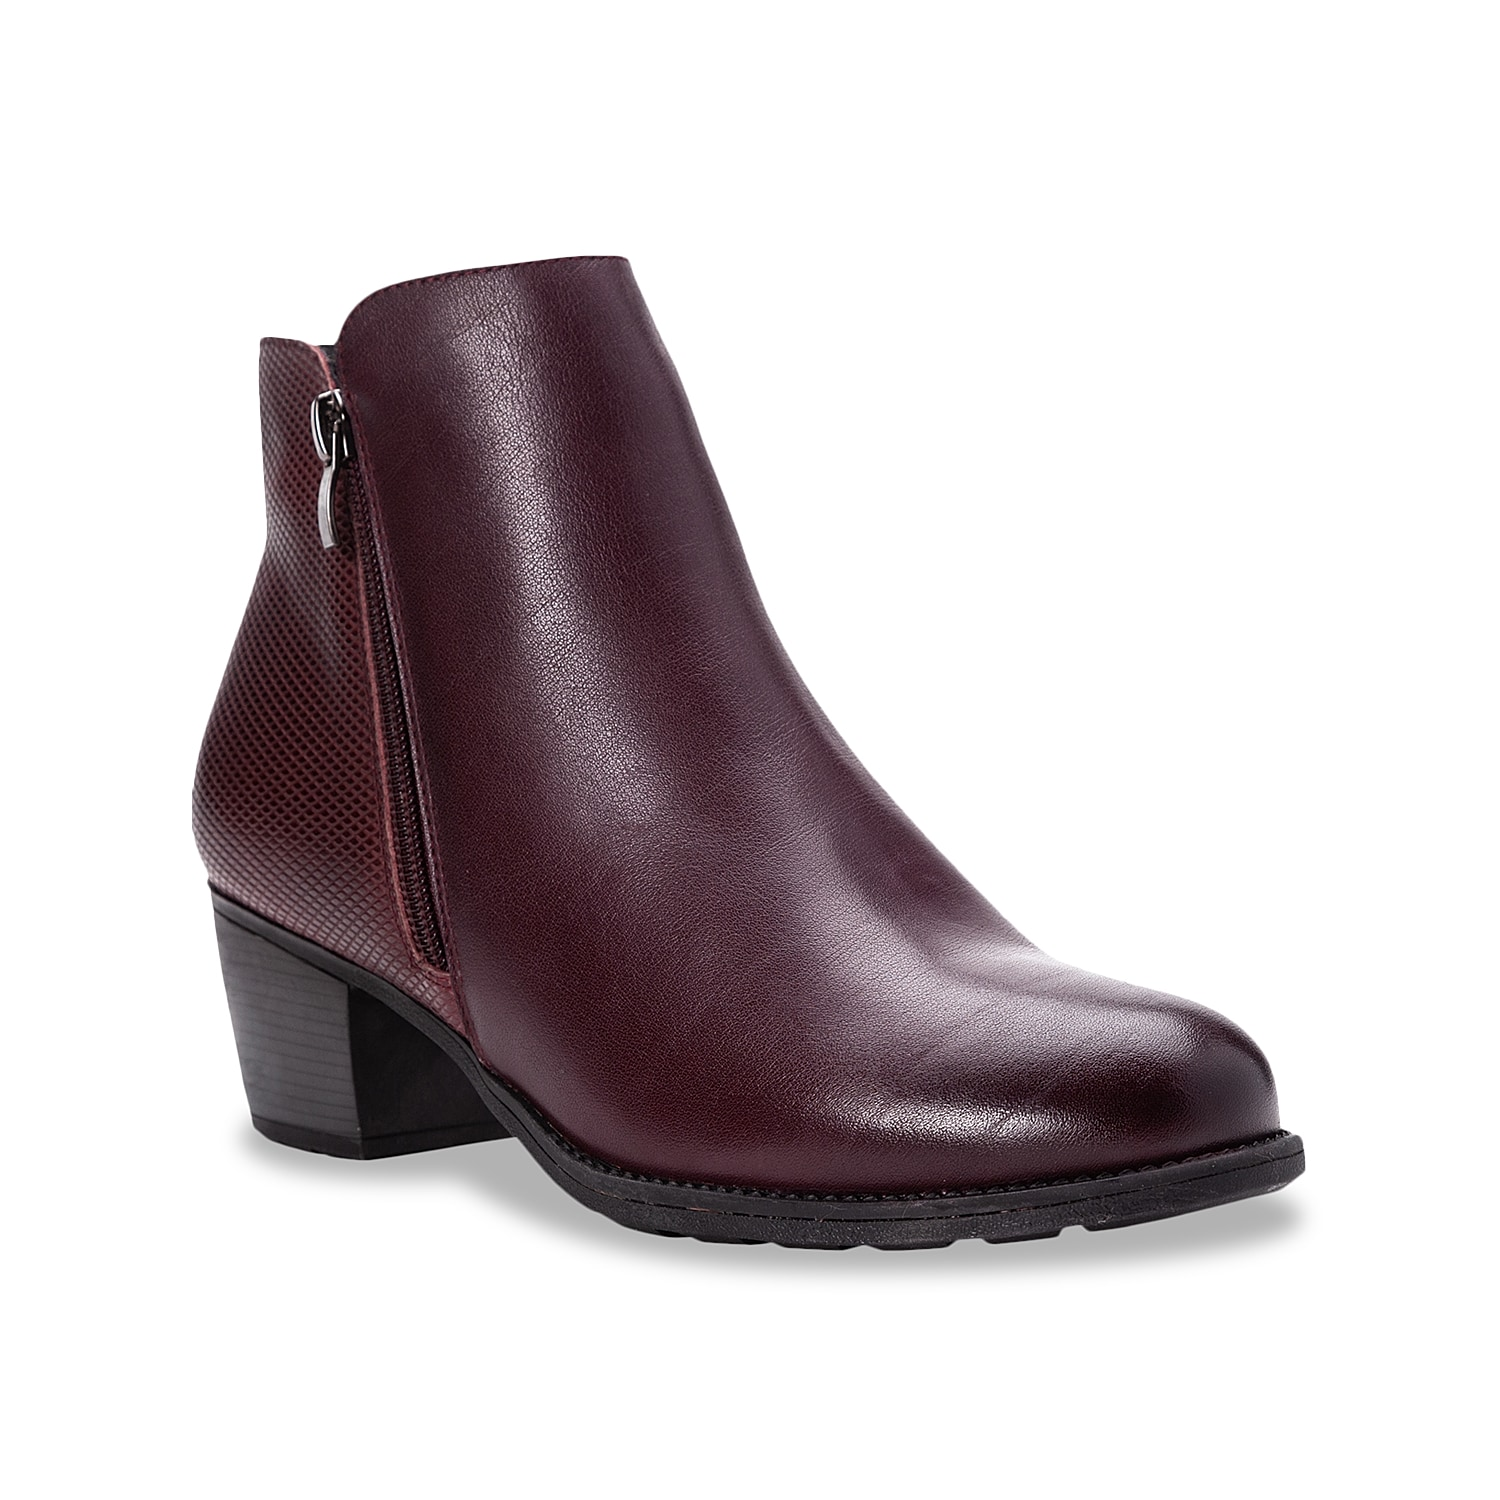 The Tobey bootie from Propet will pair with anything in your cool weather wardrobe. This ankle boot features a smooth leather upper lifted by a molded block heel for versatile appeal.Click here for Boot Measuring Guide.